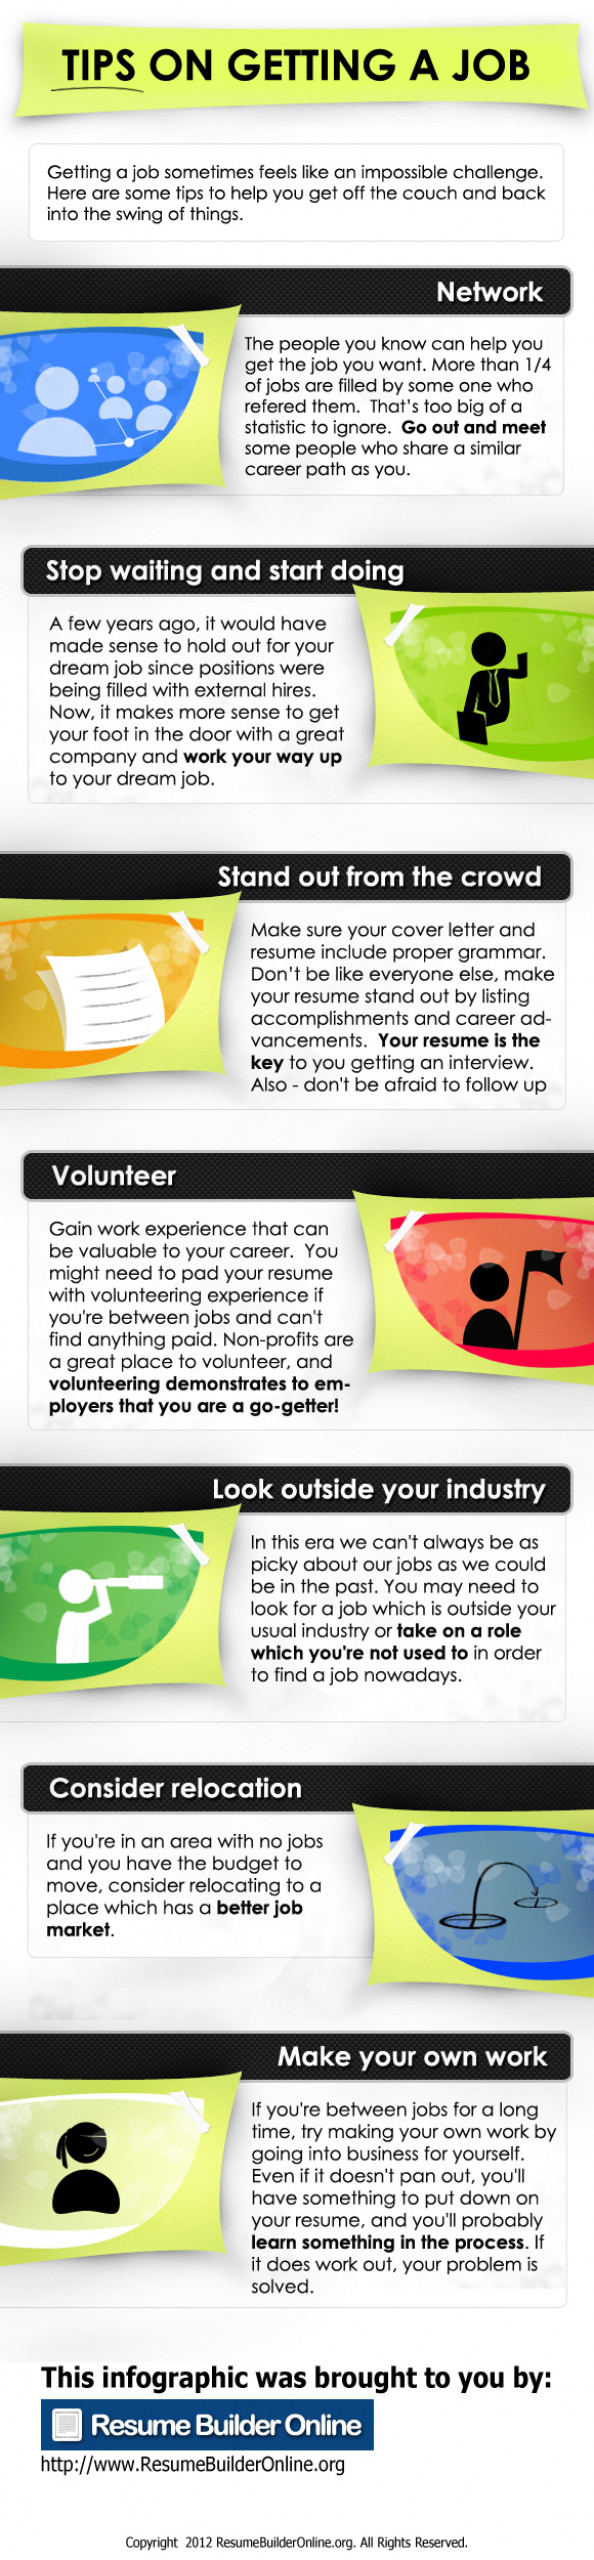 Tips On Getting A Job Infographic